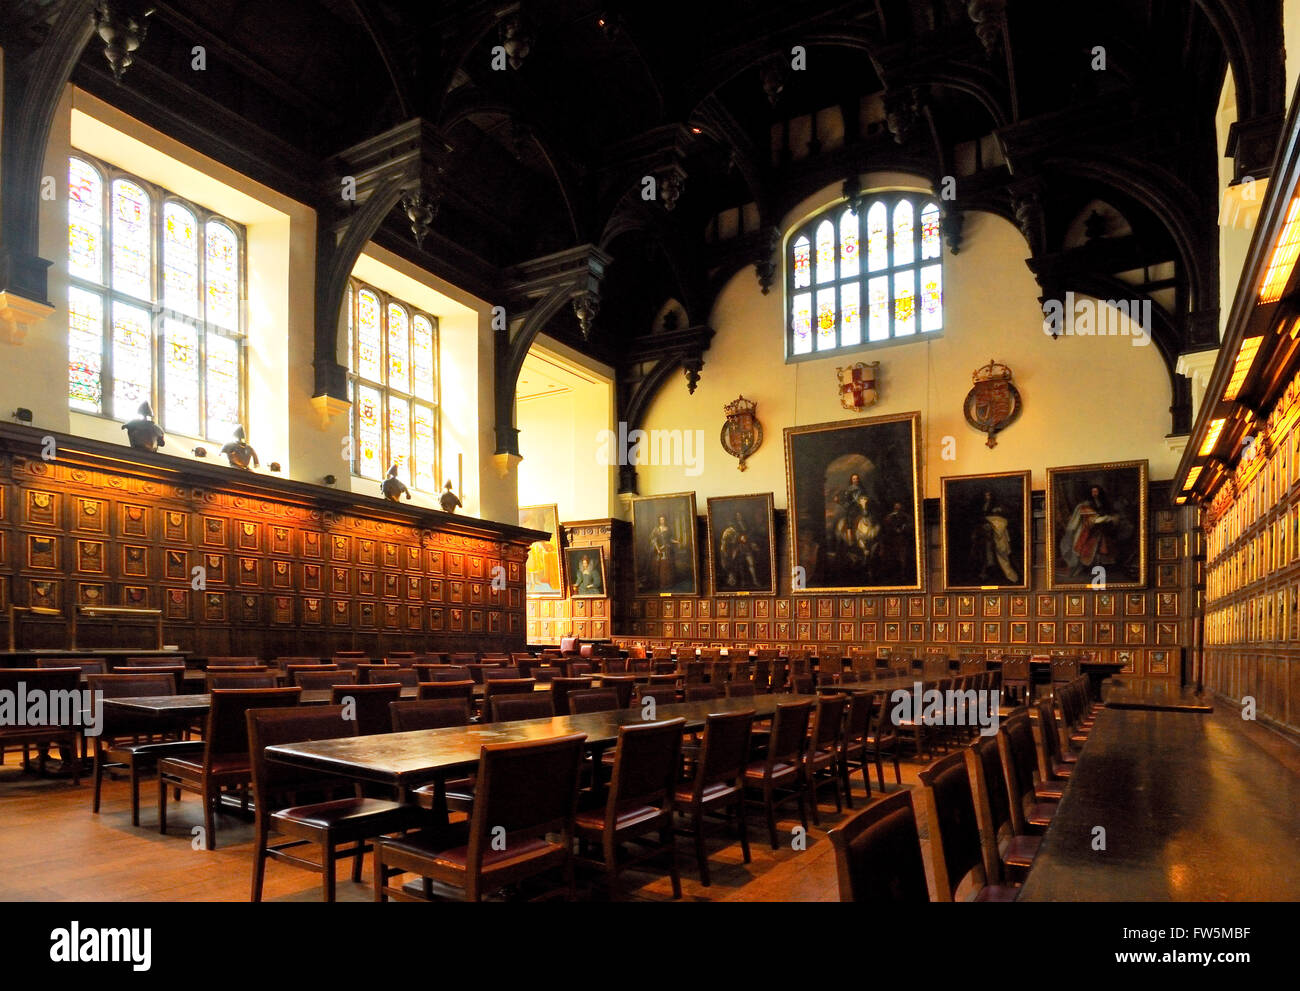 the Middle Temple Hall, built in 1570, London Inns of Court, with a High Table presented by Queen Elizabeth I, and - Stock Image